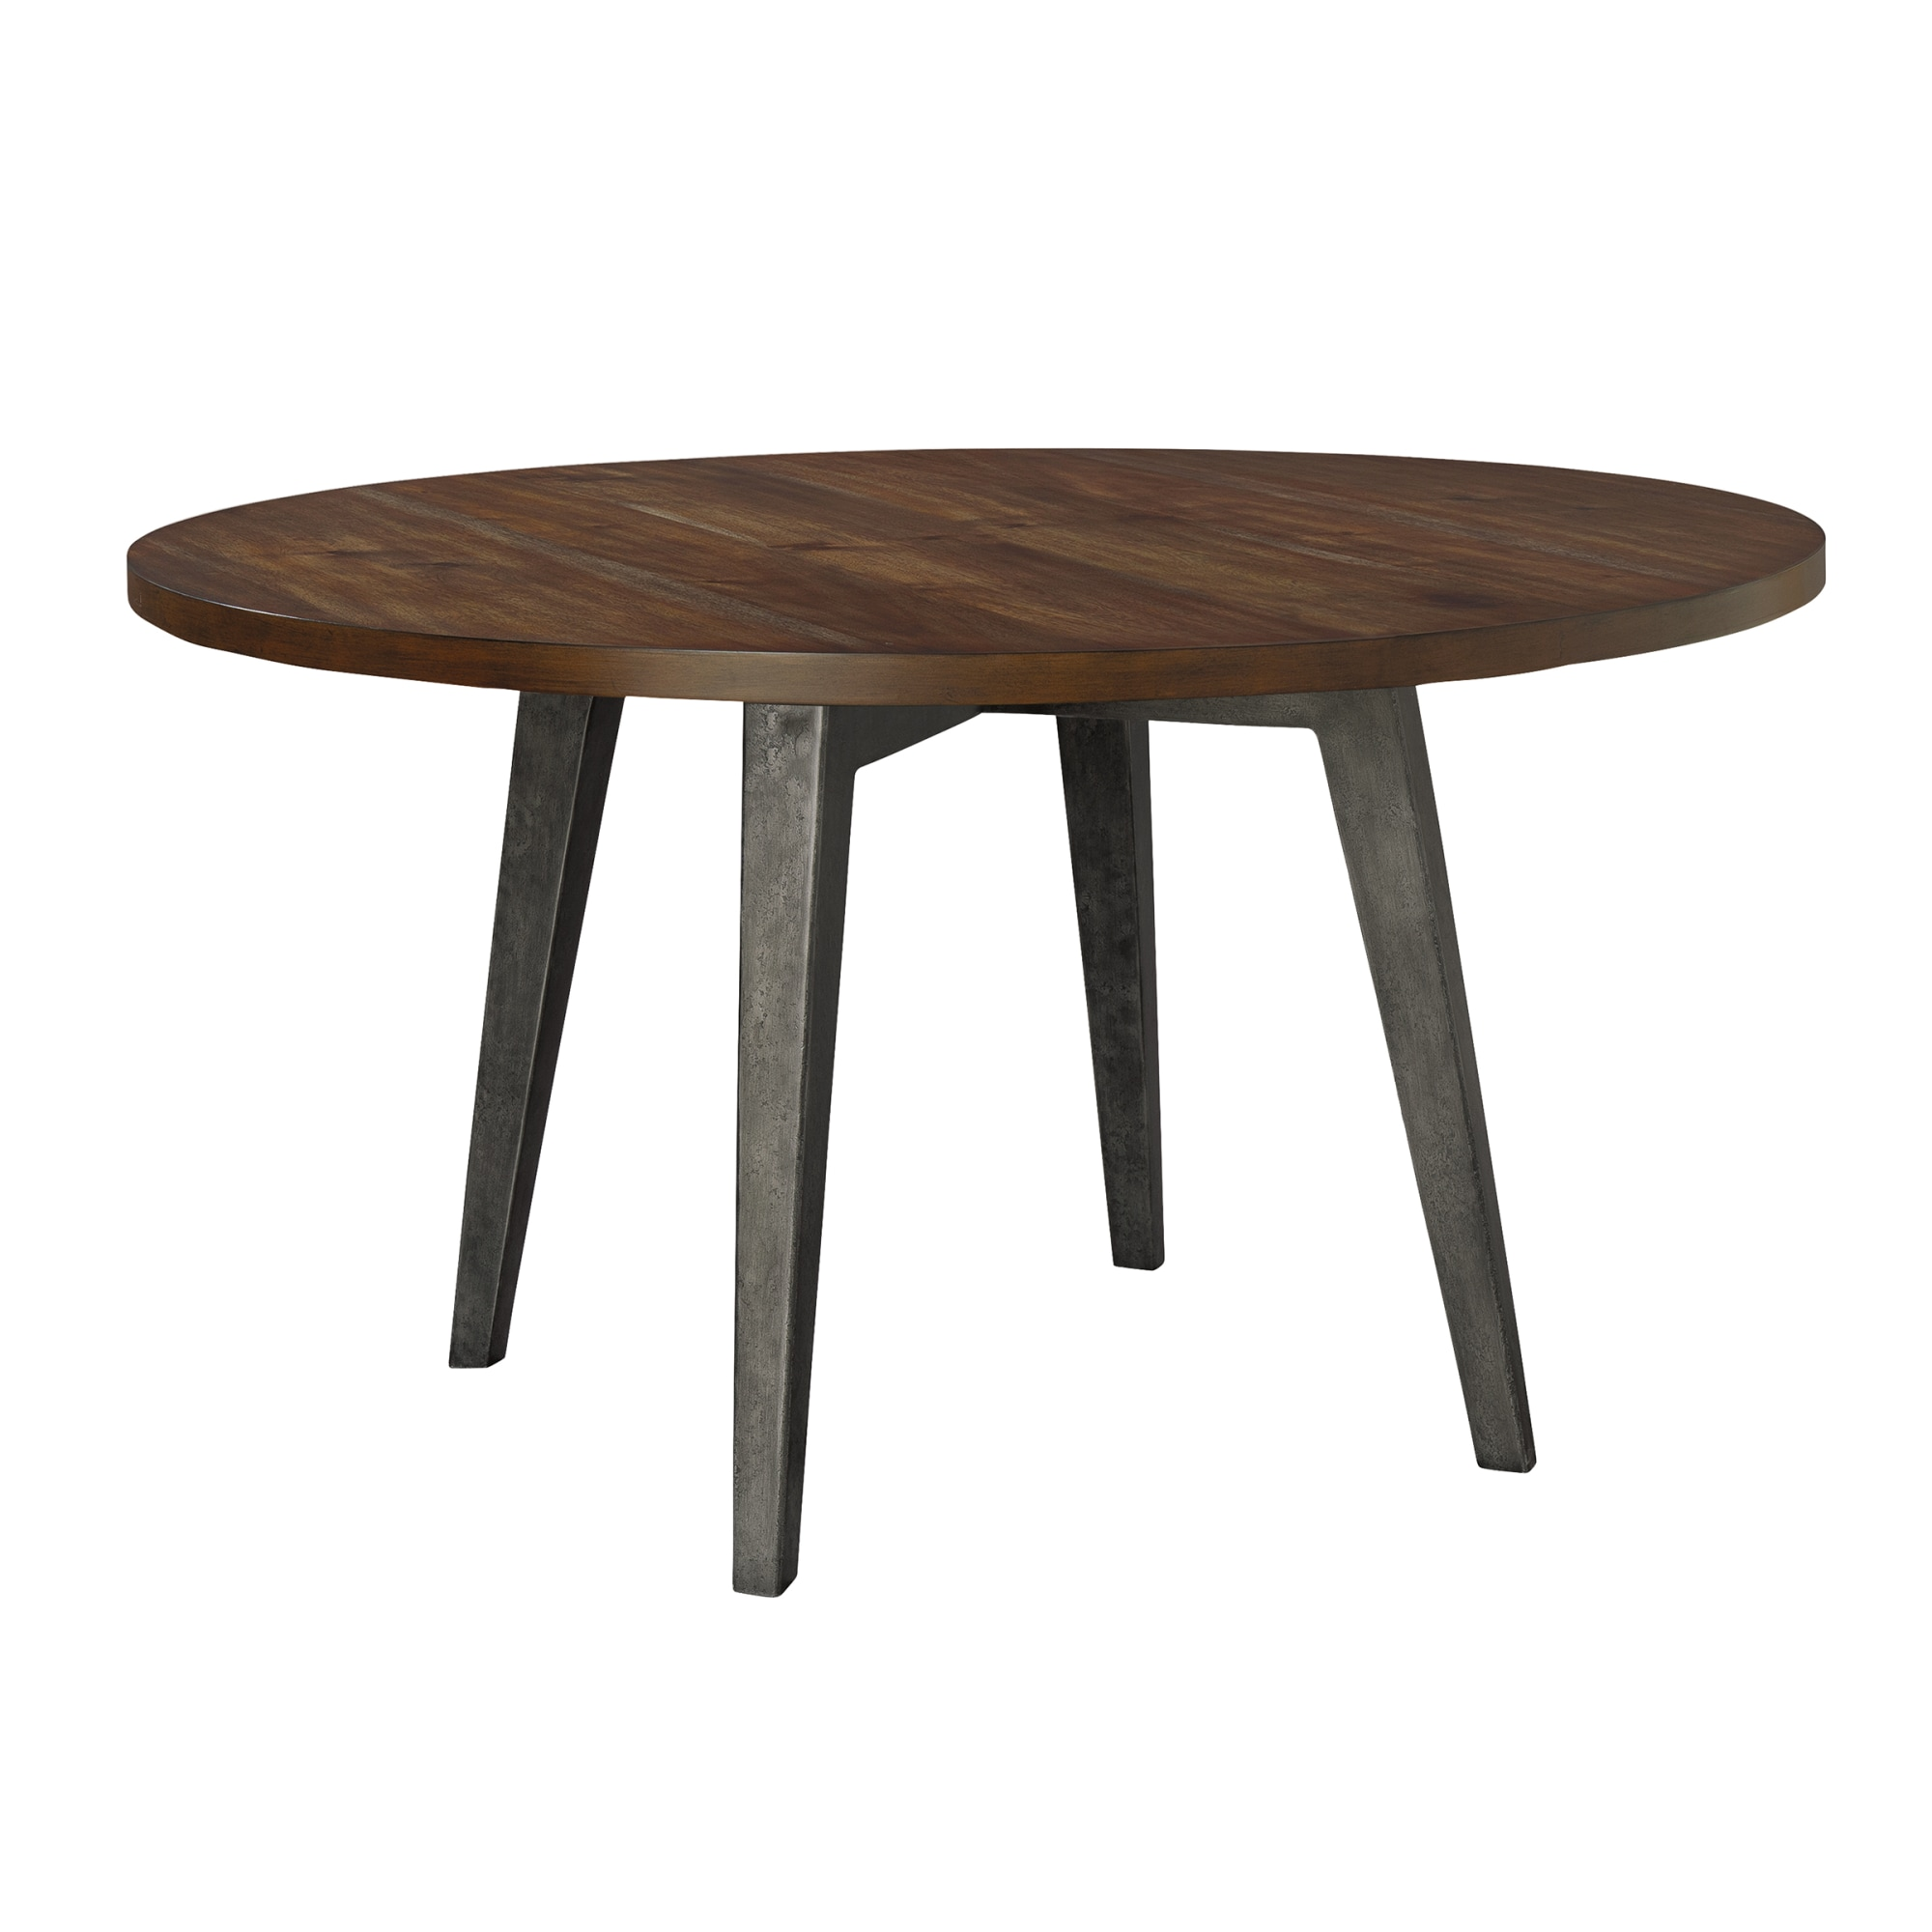 """Image for 2-4319 Monterey Point 48"""" Round Splayed Leg Dining Table from Hekman Official Website"""